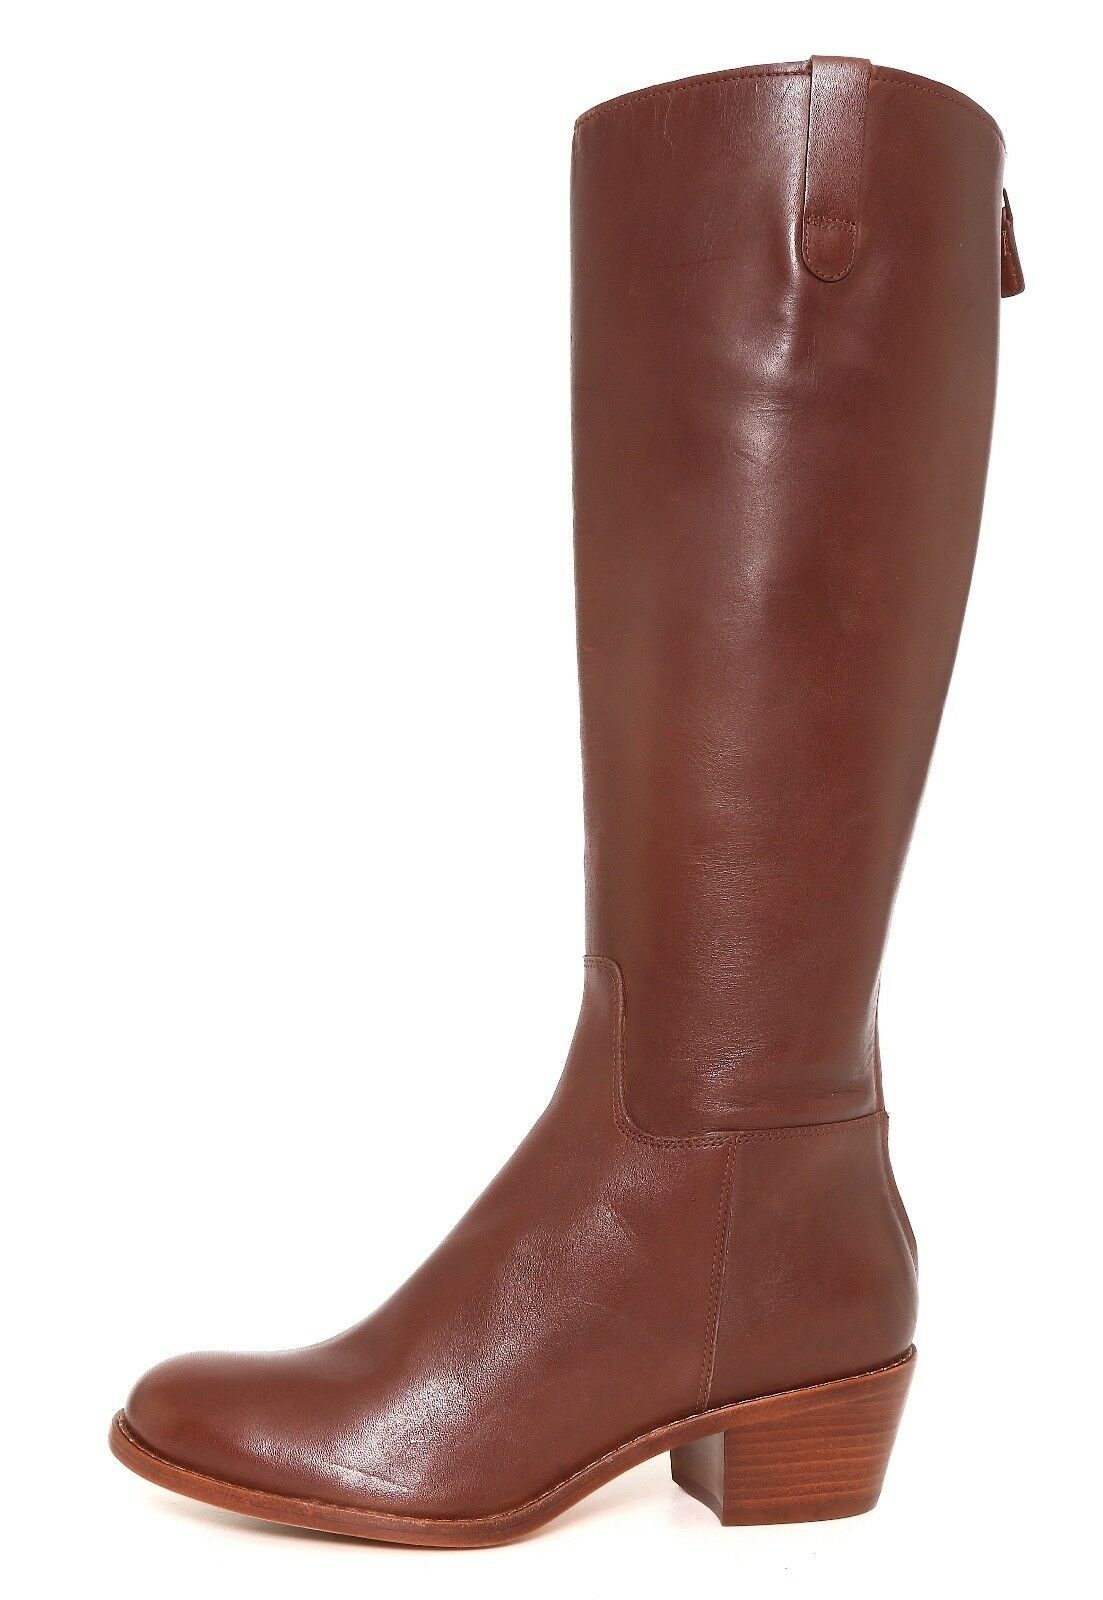 Cole Haan Wesley Leather Tall Tall Tall Stiefel Chestnut damen Sz 5.5 B 6680  1ba058